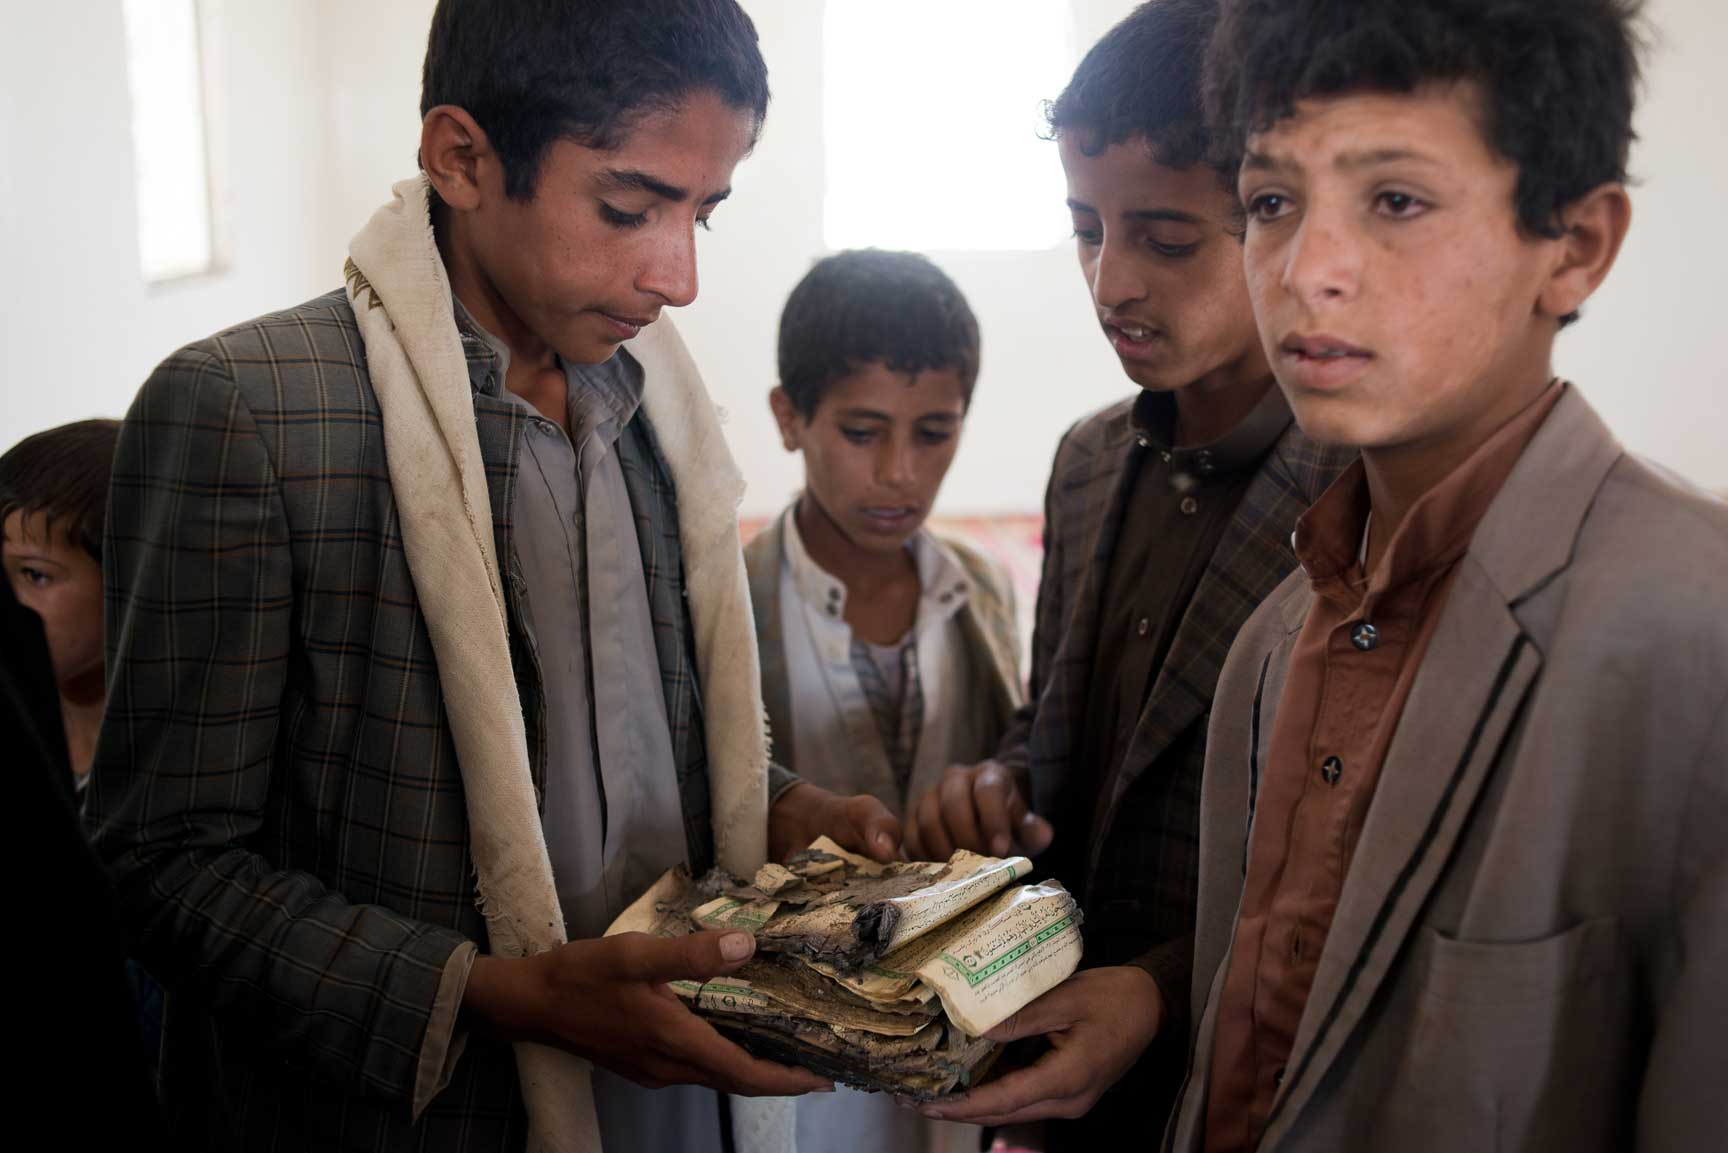 Yemeni boys survey the damage to a mosque after an airstrike on Thursday, July 7, 2015 in Al Joob Village, Yemen. Two airstrikes on July 6 hit a public market near homes and a mosque and farmers selling produce on the side of the road; the two combined killed over 30 civilians.